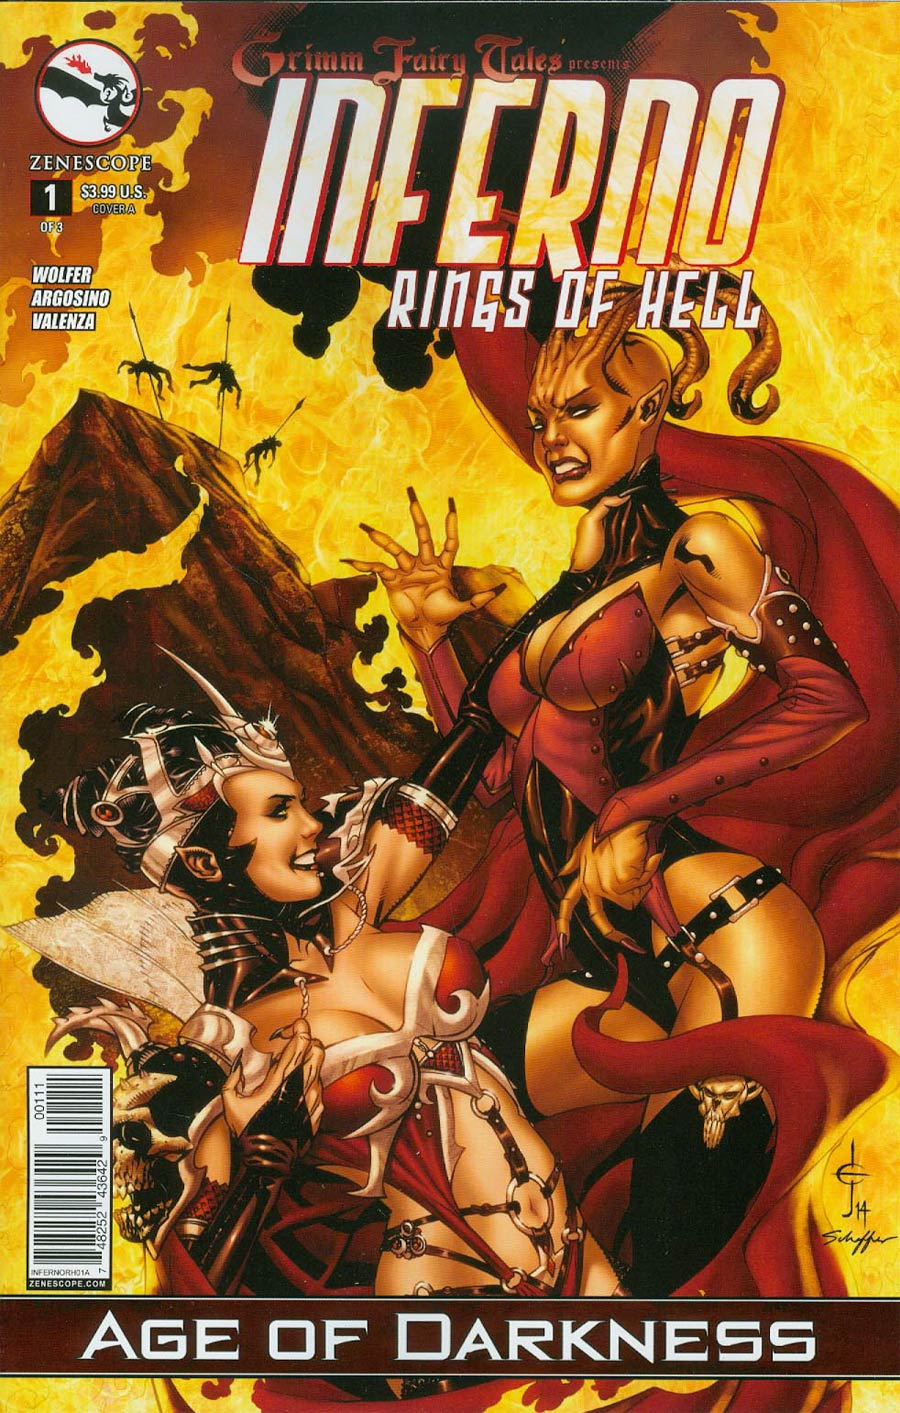 Grimm Fairy Tales Presents Inferno Rings Of Hell #1 Cover A Drew Edward Johnson (Age Of Darkness Tie-In)